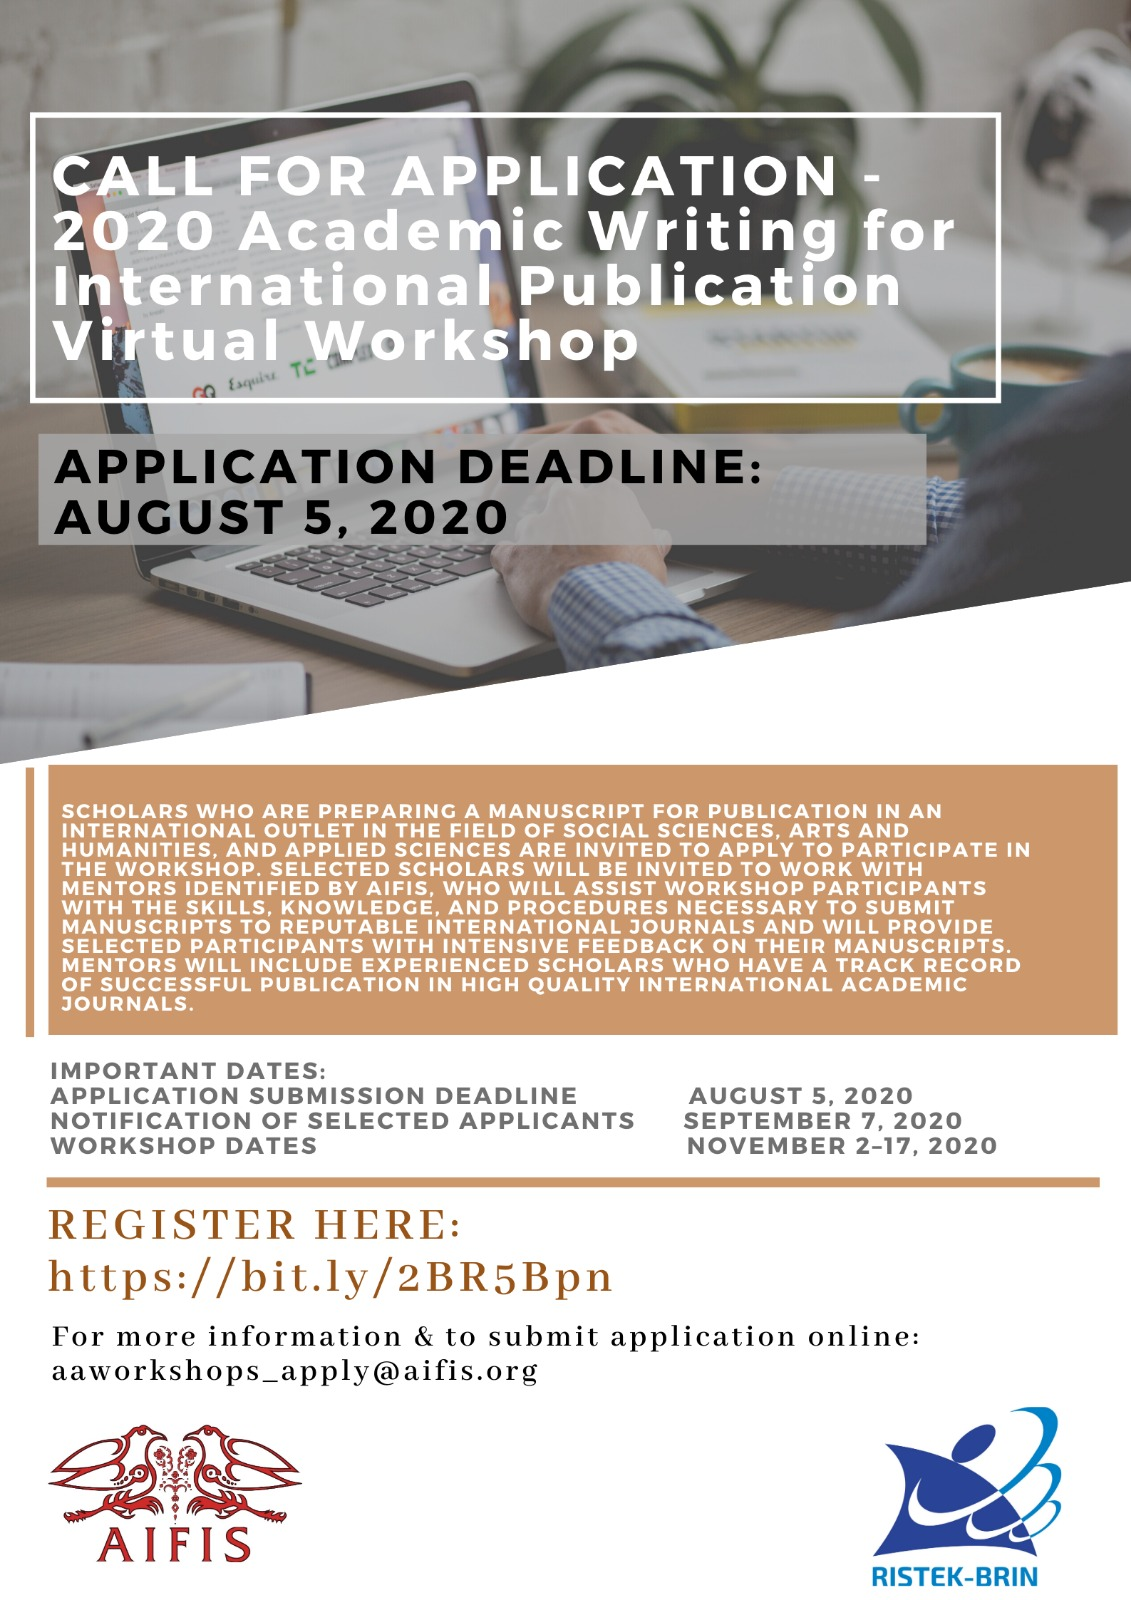 Advancing Indonesian Scholar's Research and Publication in International Outlets: A Virtual Workshop